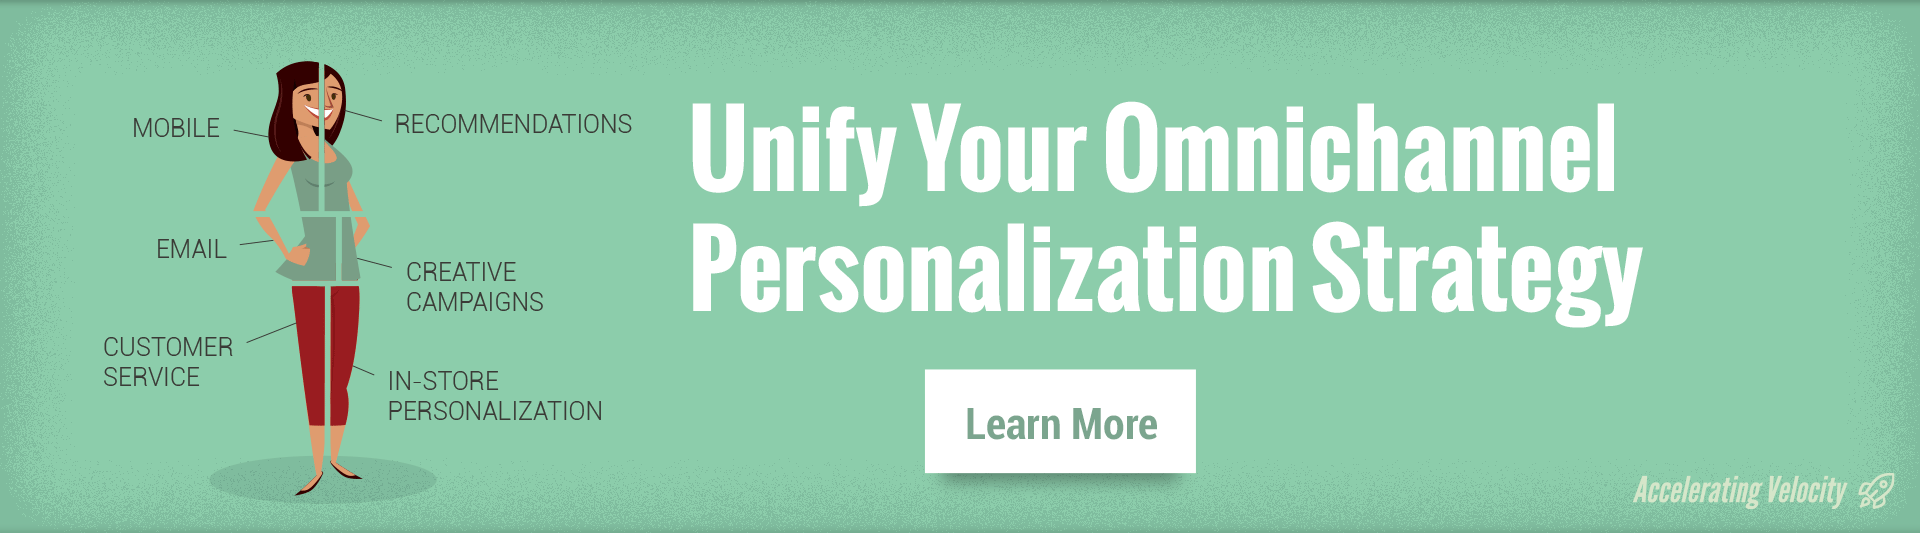 Unify Your Omni-Channel Personalization Strategy